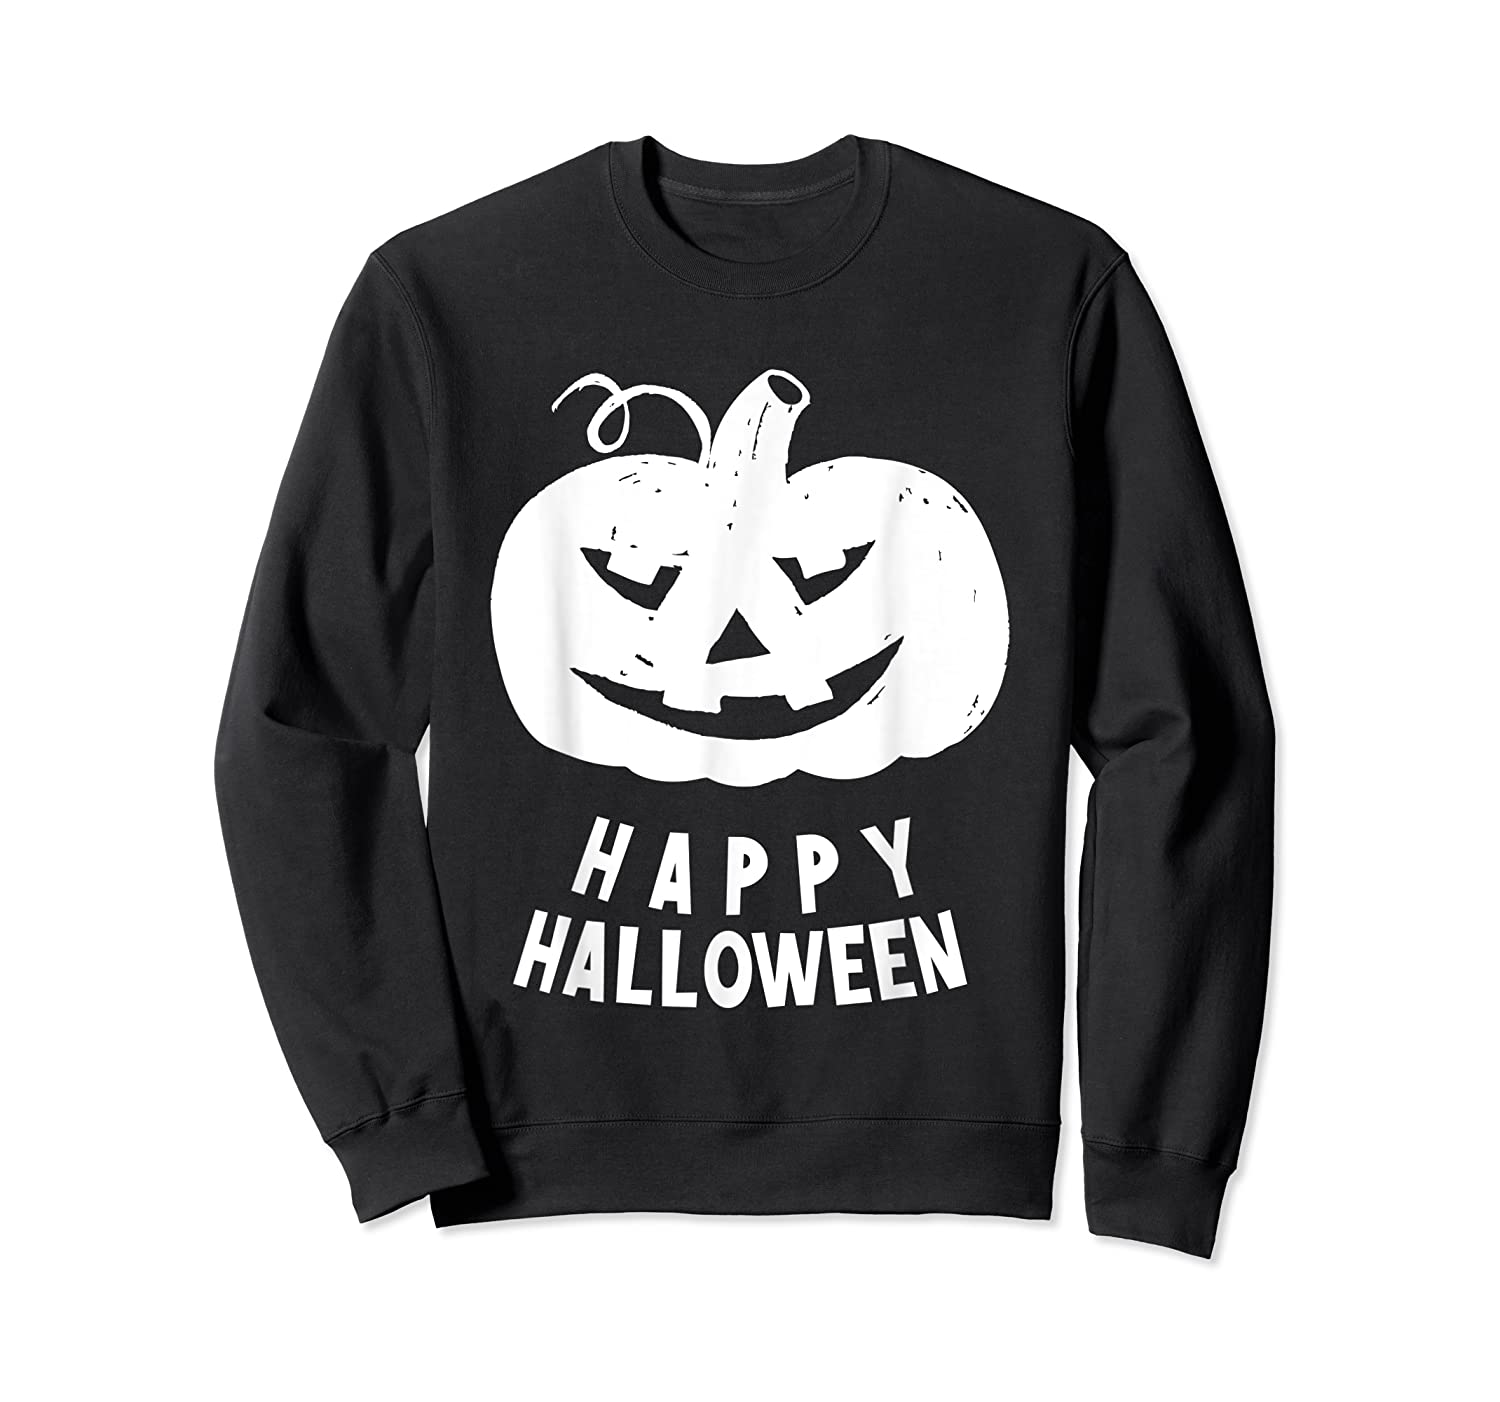 Funny Happy Halloween Costumes Scary Spooky Pumpkin Costume Shirts Crewneck Sweater